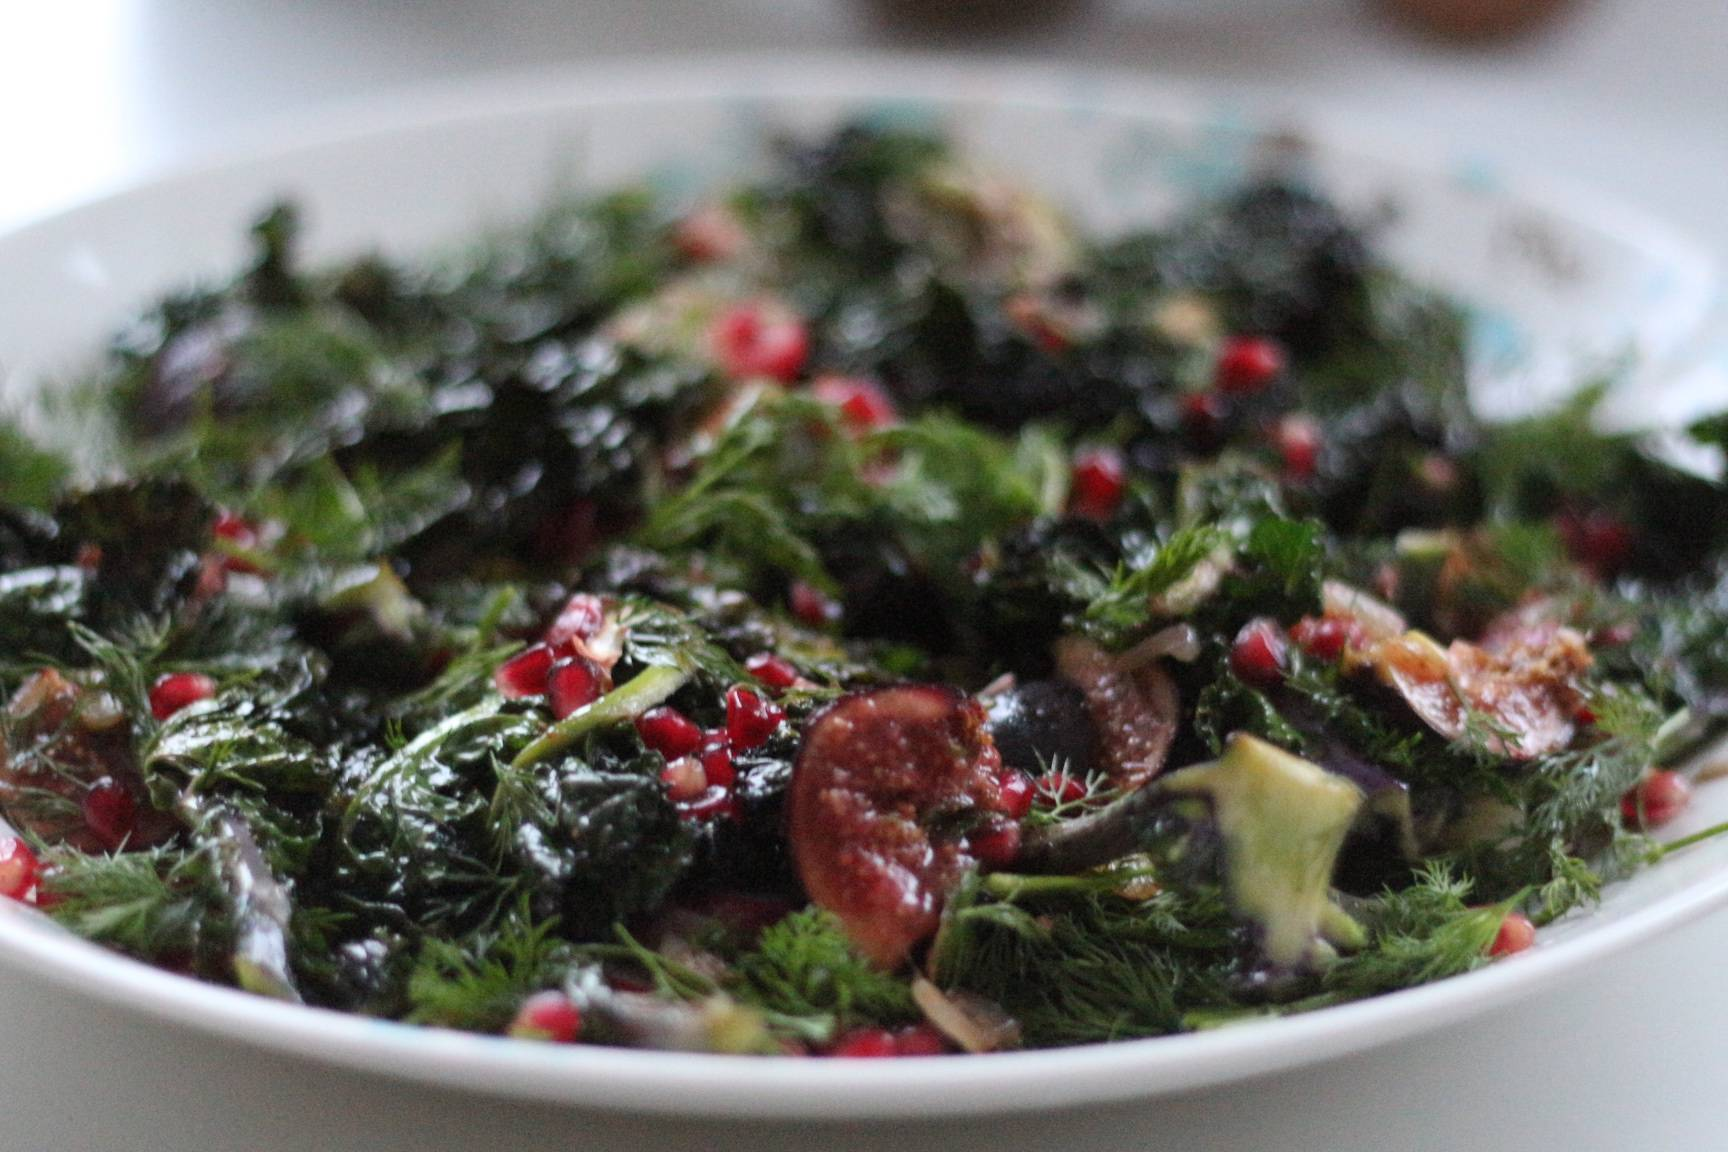 Purple Sprout Top Salad with figs and pomegranate